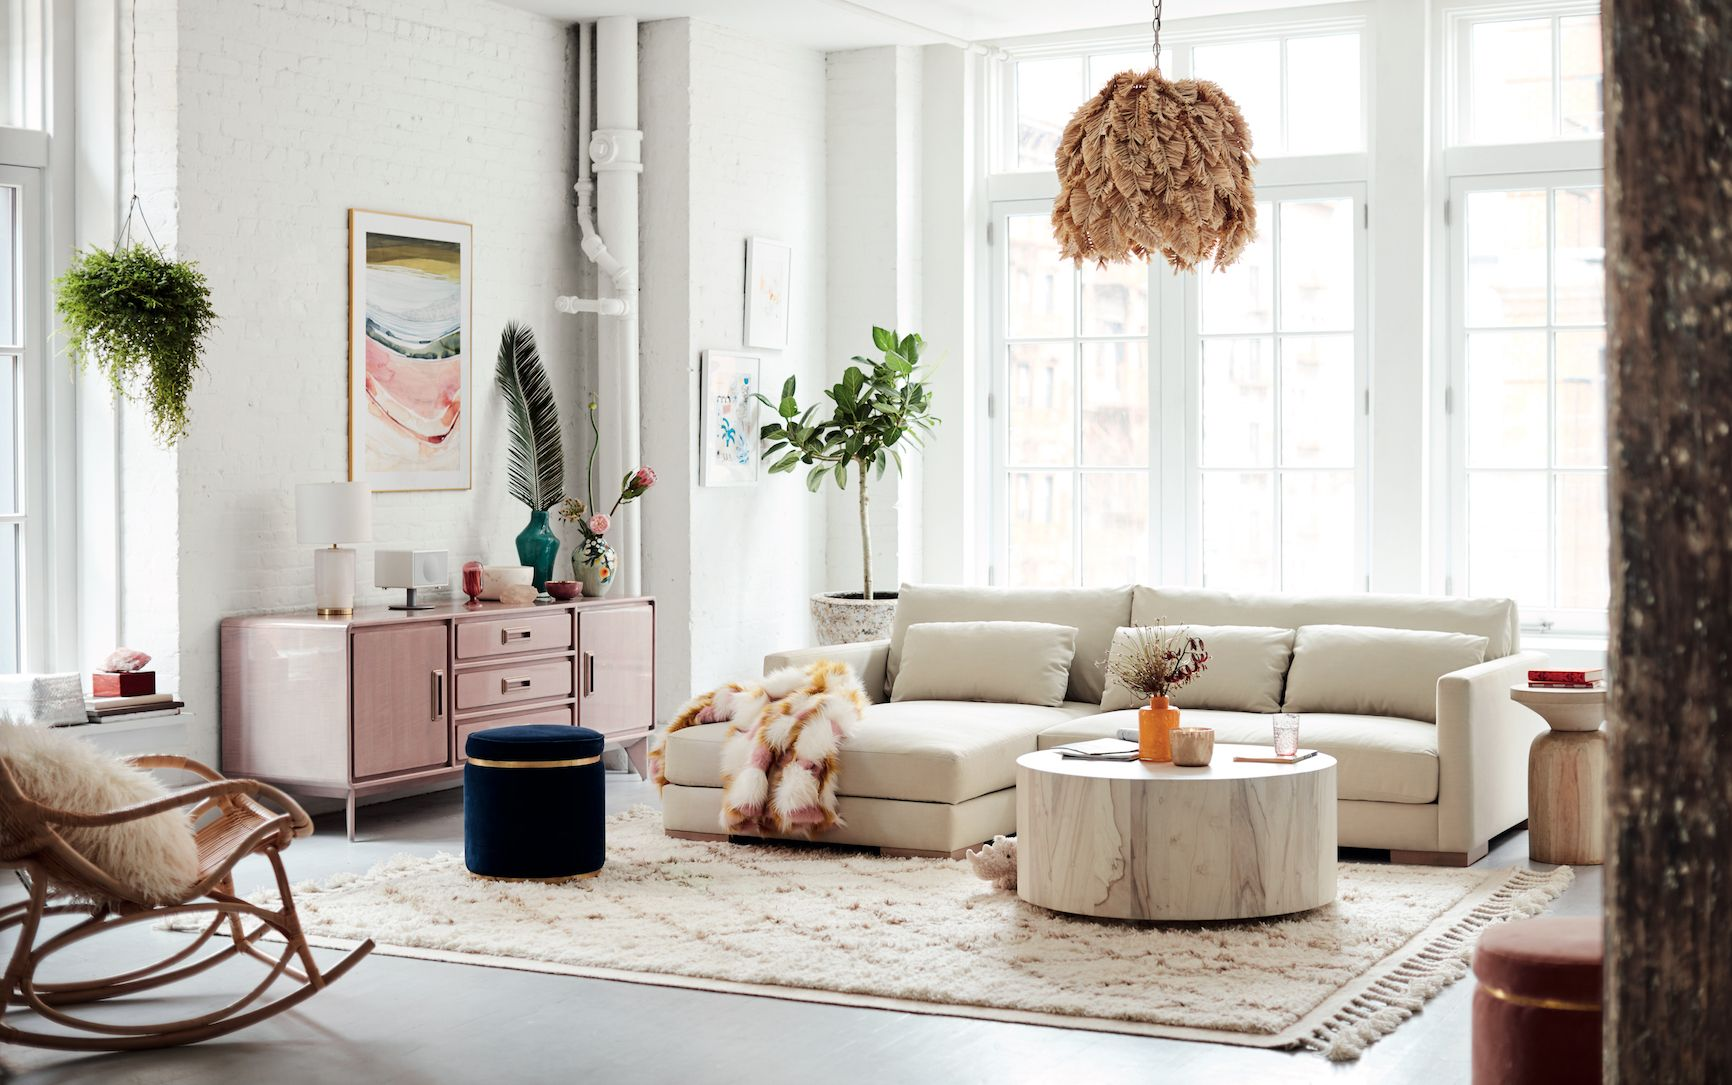 Anthropologie's Fall Home Collection is Here, and We Want it All!